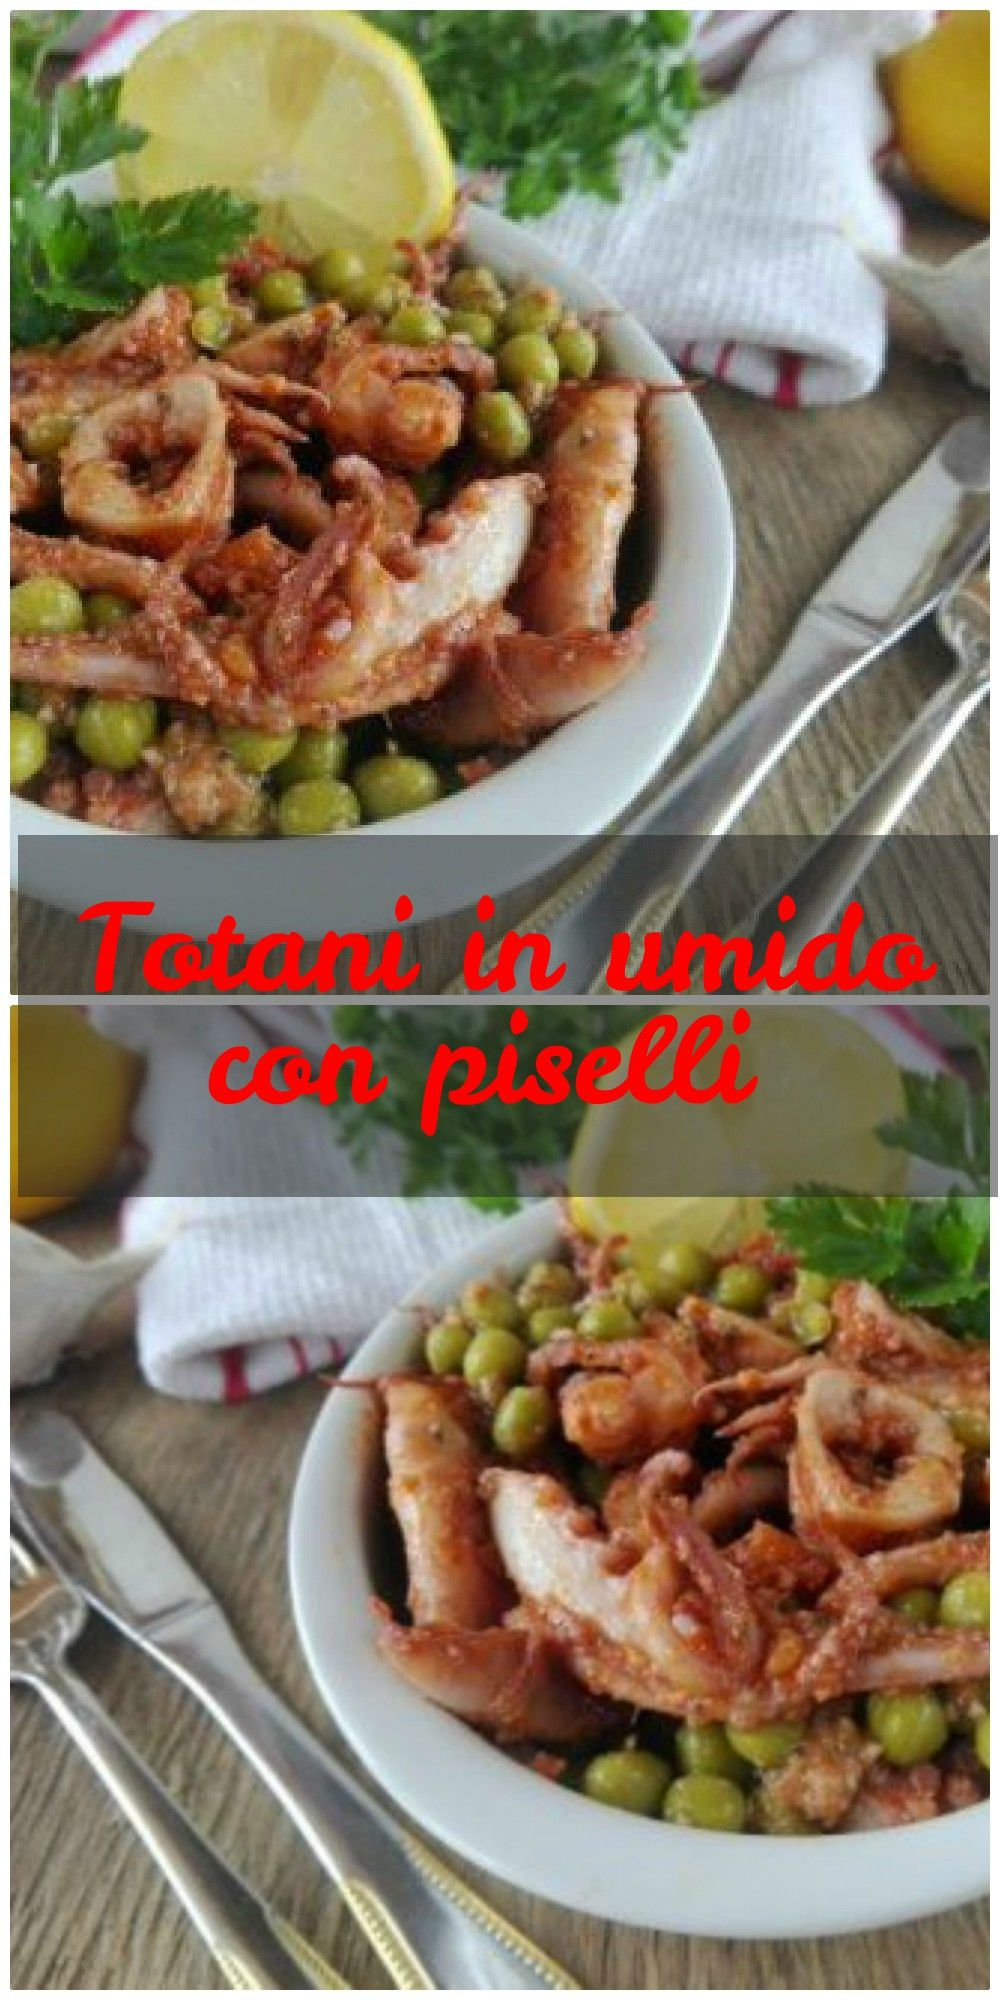 Photo of Stewed squid with peas and tomato